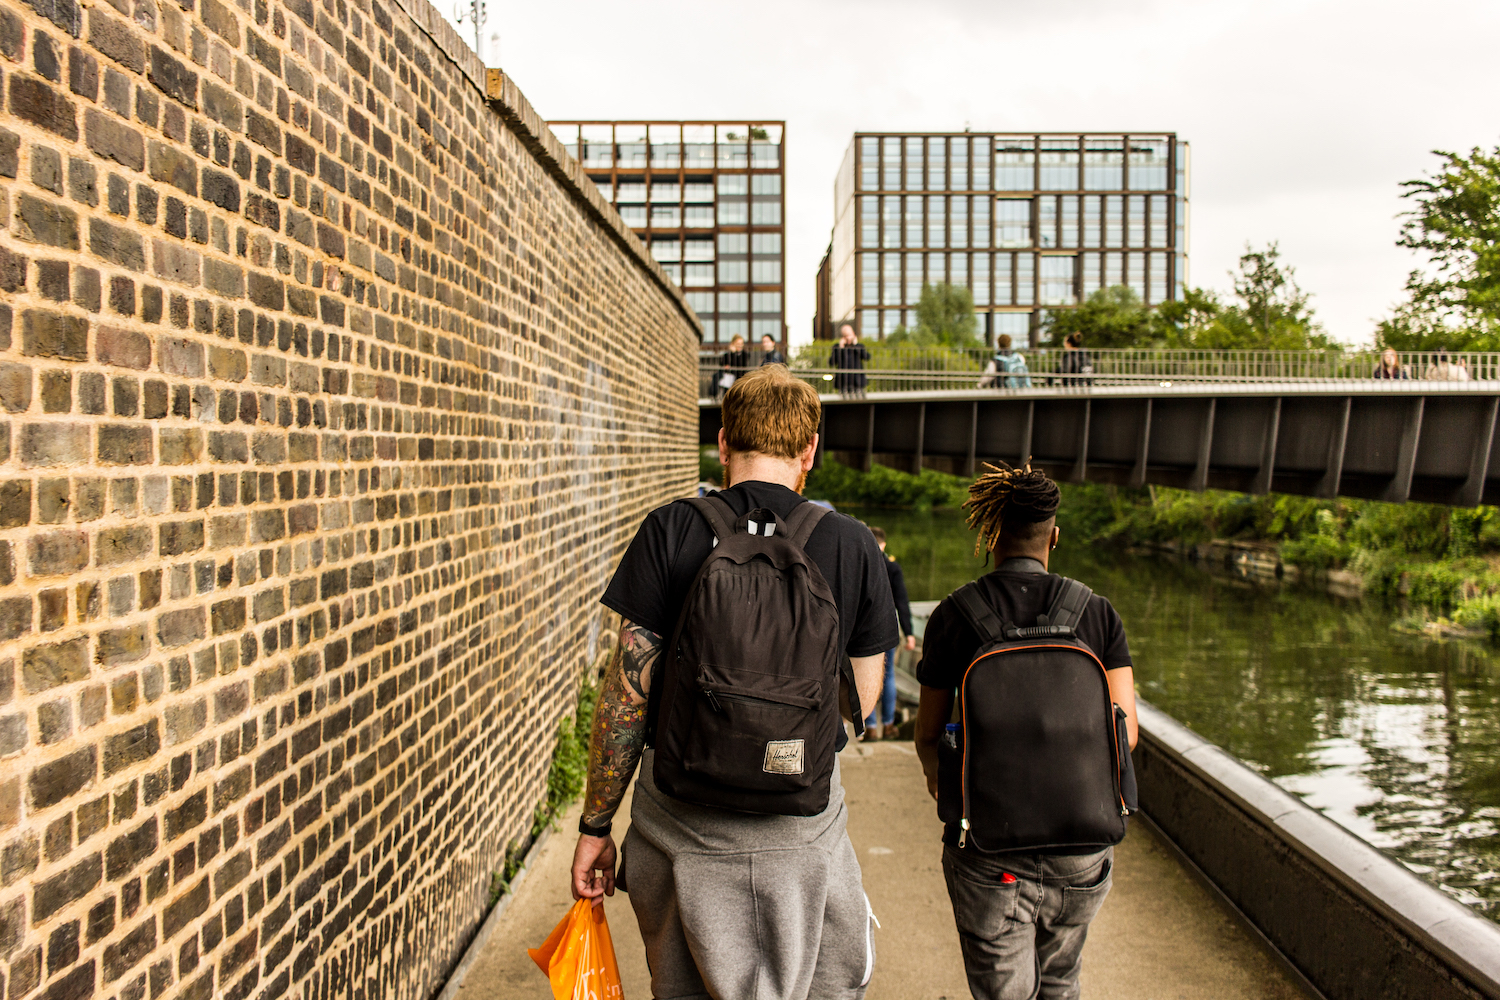 Professional Photography White Man With Beard Black T-Shirt And Black Backpack Walking With Dreadlocks Black Woman Wearing Black T-Shirt And Black Backpack Walking Alongside River Canal To Limehouse Basin